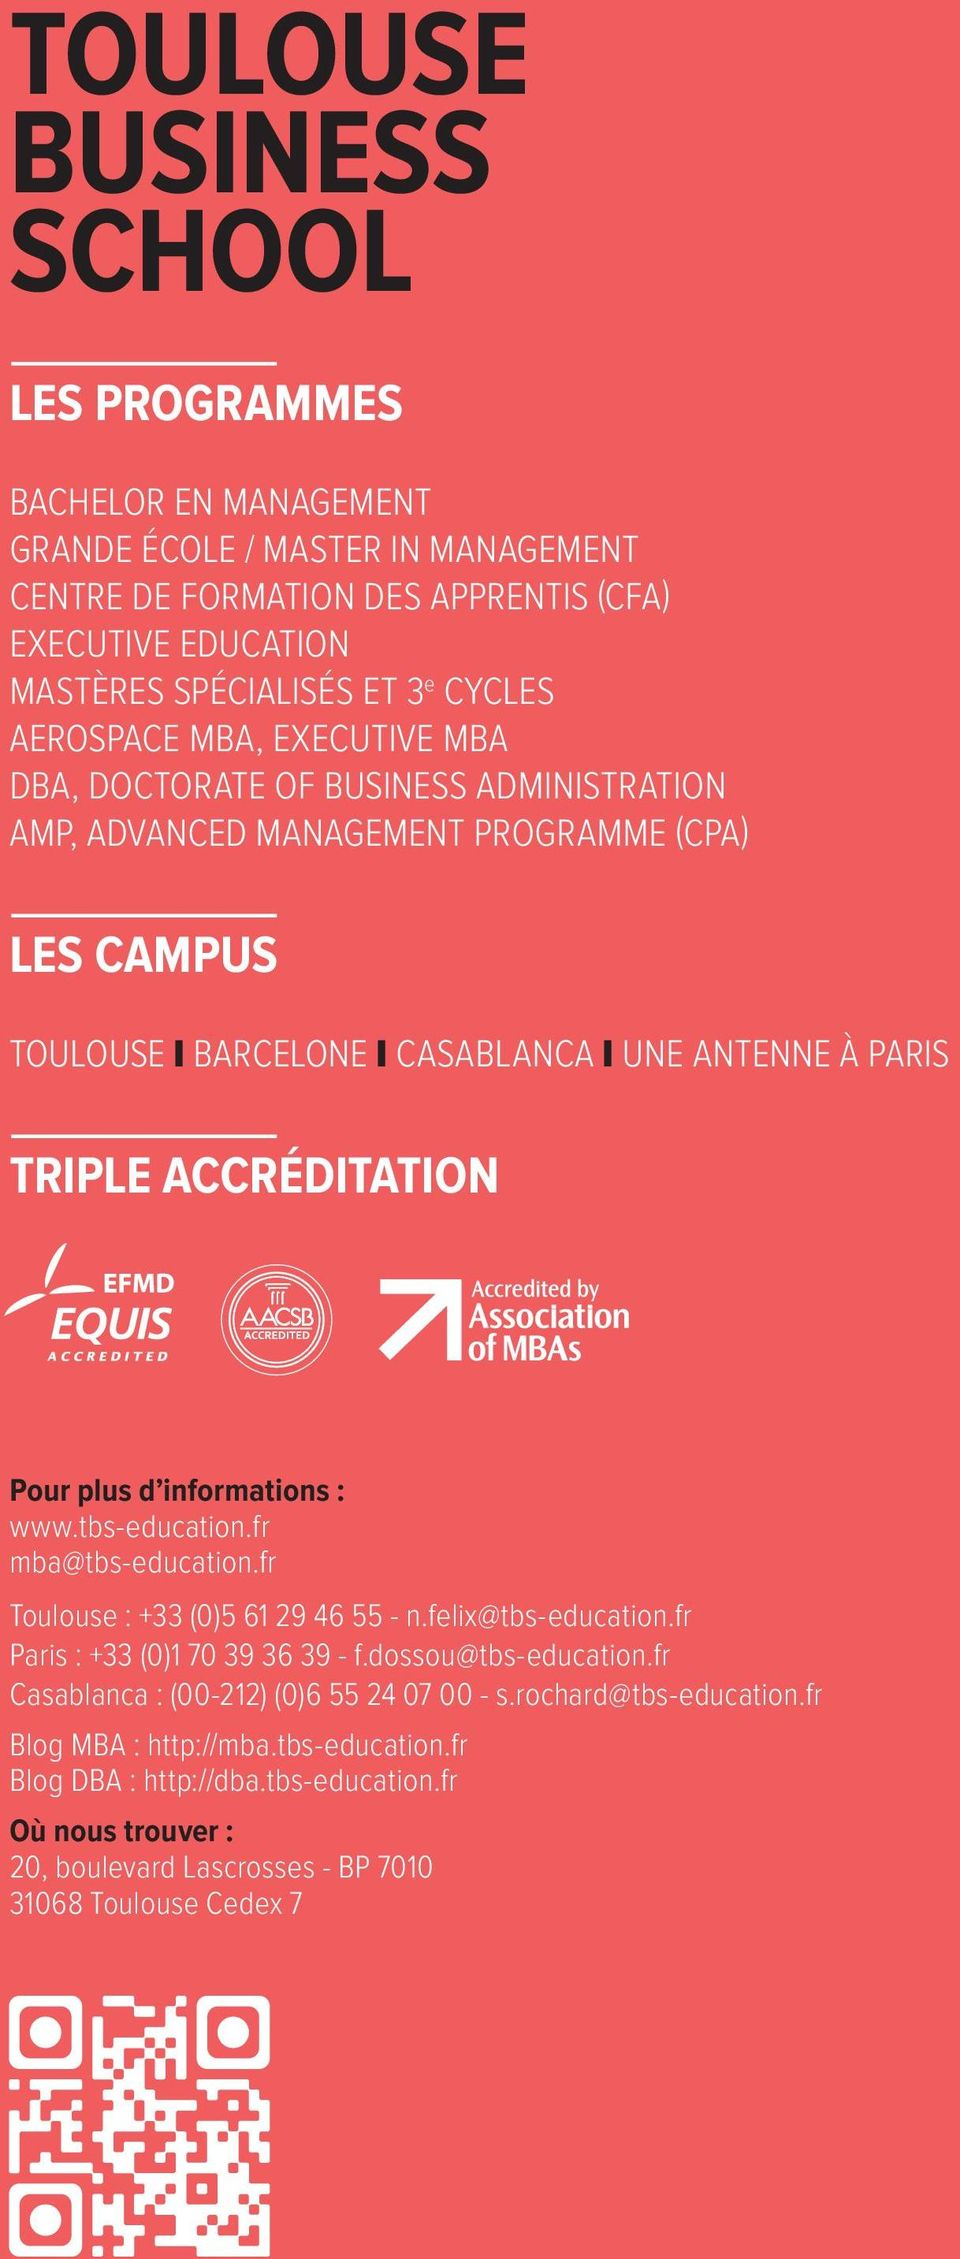 Pour plus d informations : www.tbs-education.fr mba@tbs-education.fr Toulouse : +33 (0)5 61 29 46 55 - n.felix@tbs-education.fr Paris : +33 (0)1 70 39 36 39 - f.dossou@tbs-education.